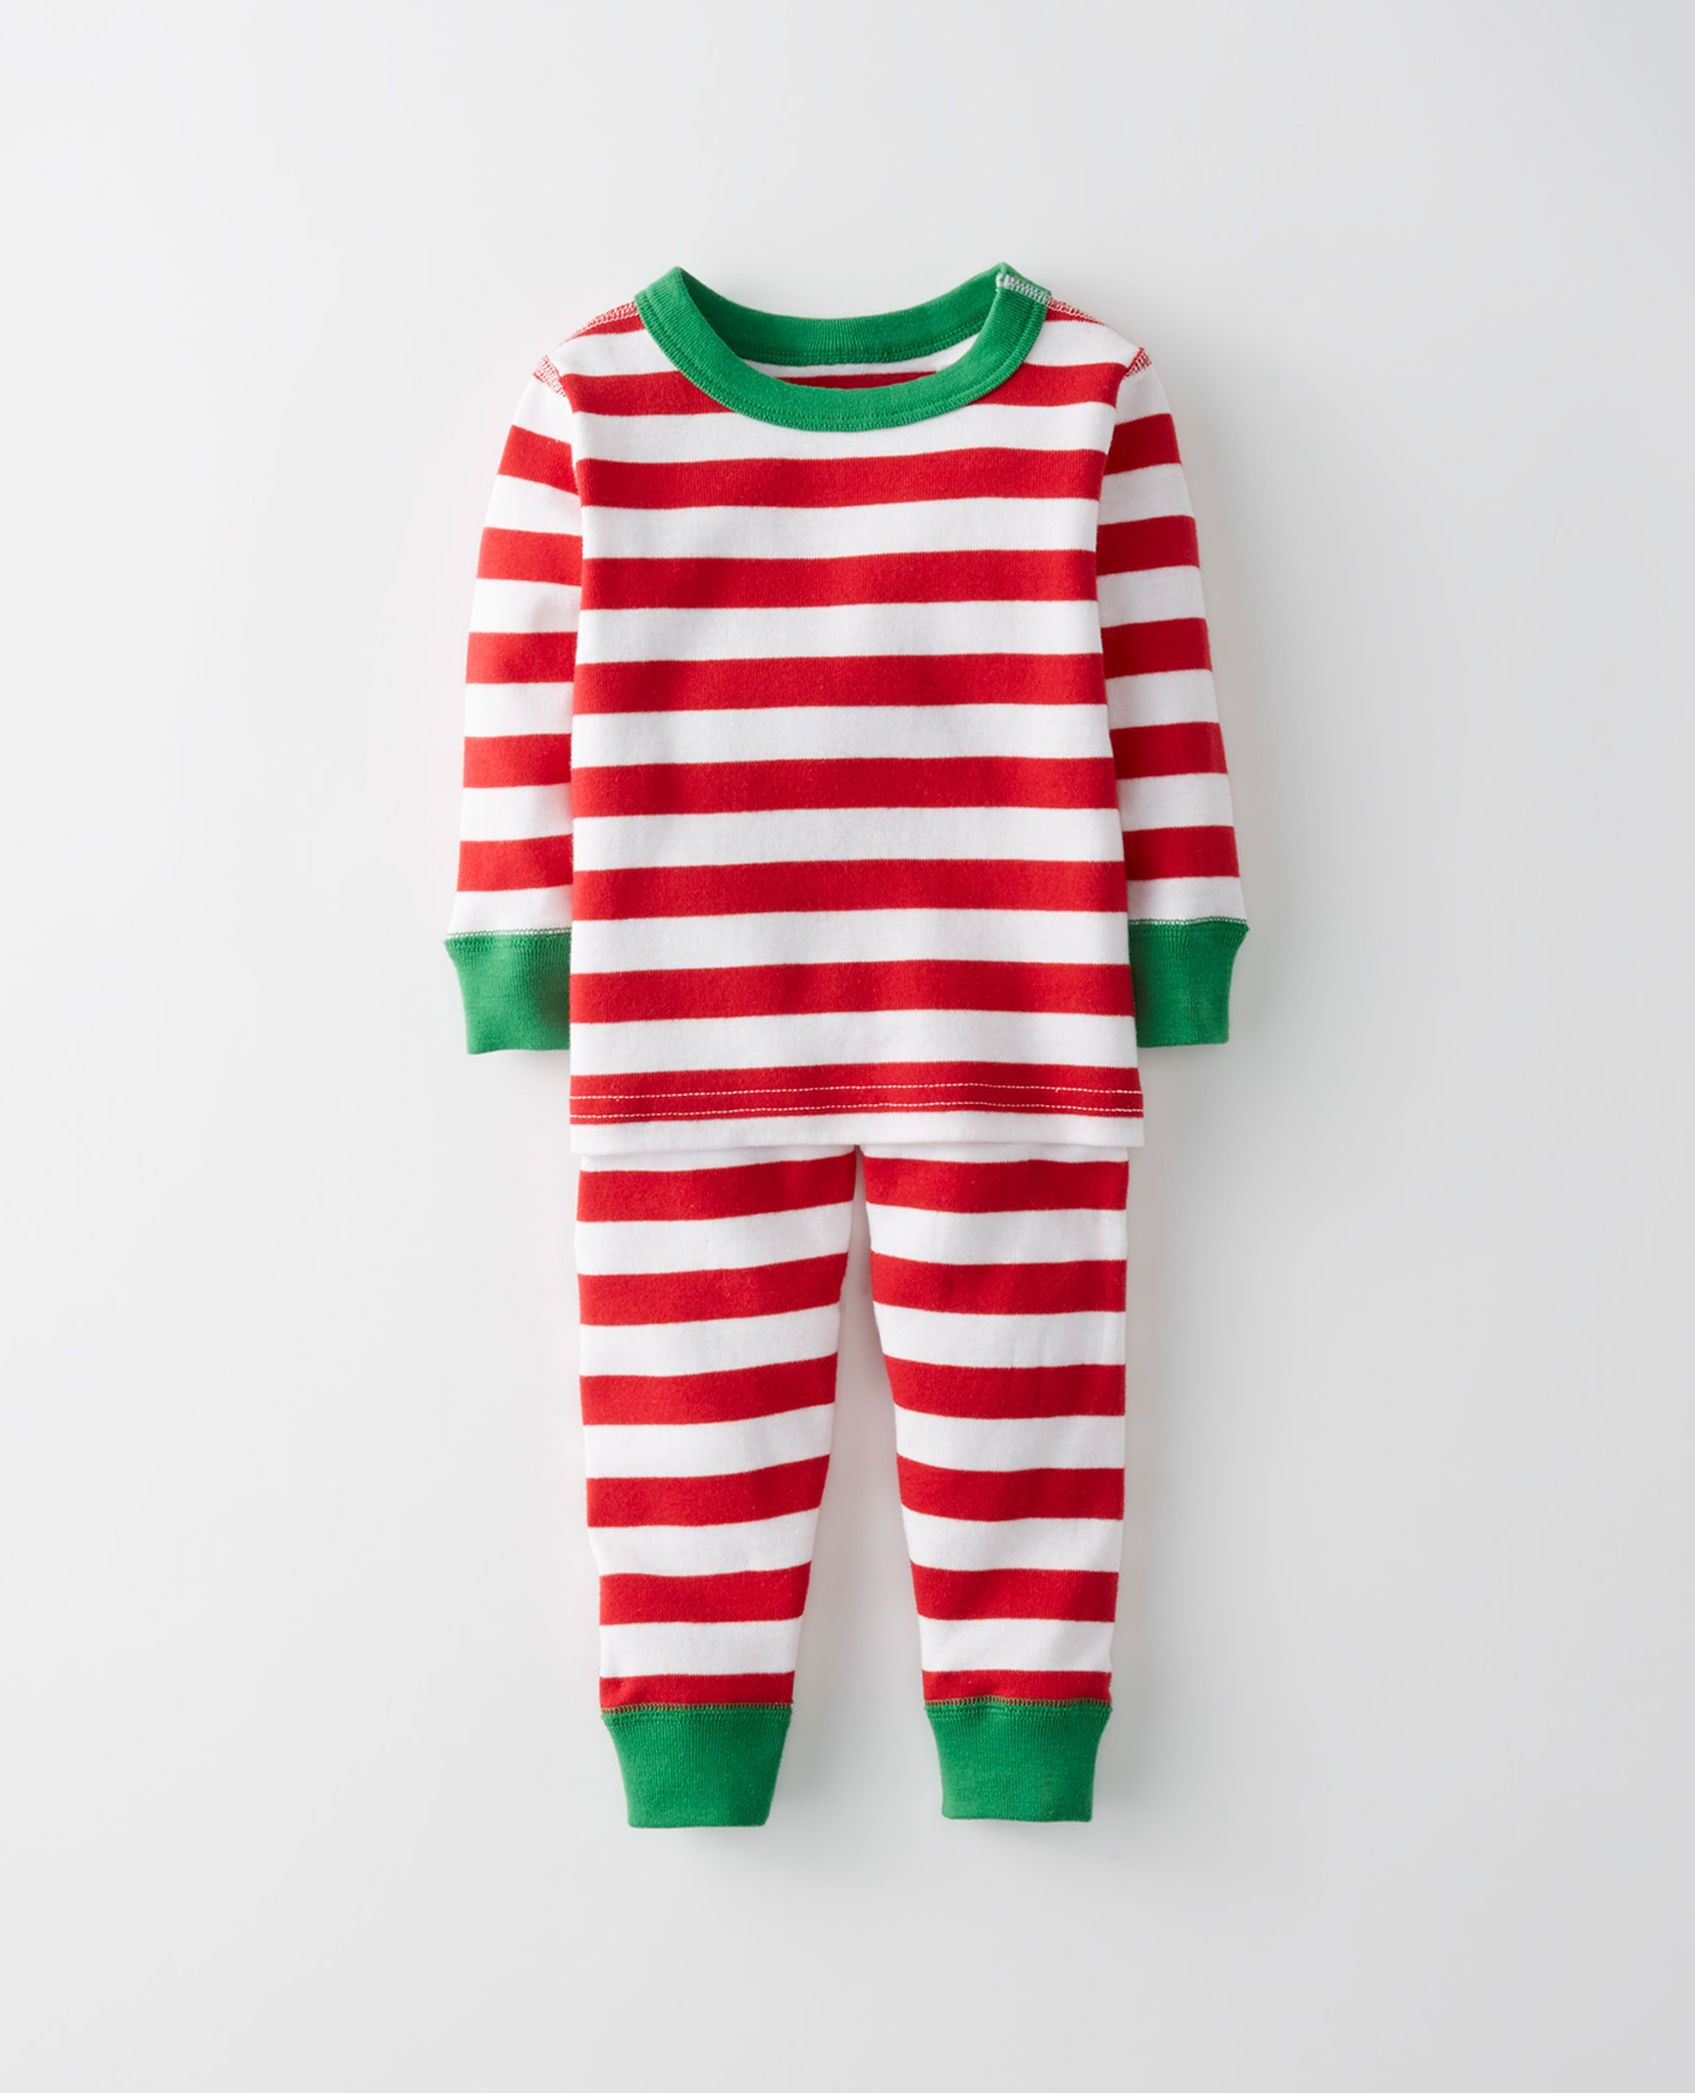 b357724a3 baby and toddler long john pajamas In Organic Cotton by Hanna ...